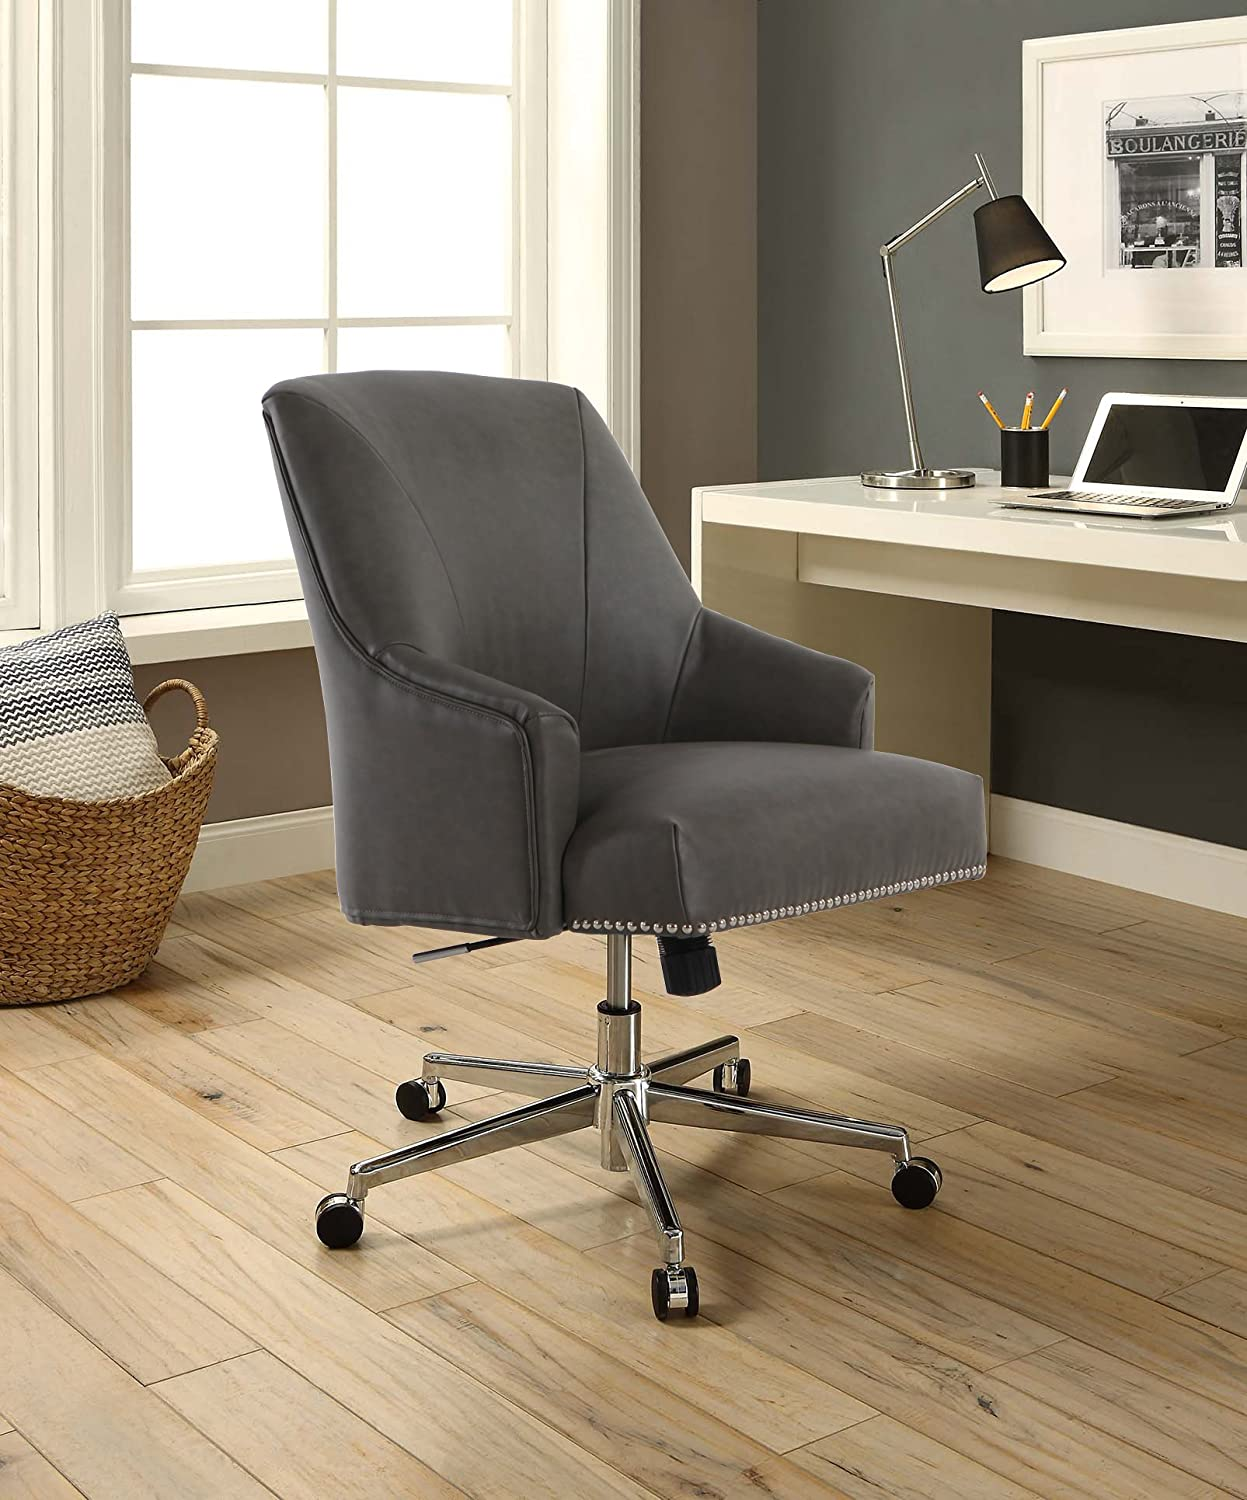 Serta Style Leighton Home Office Chair, Gathering Gray Bonded Leather